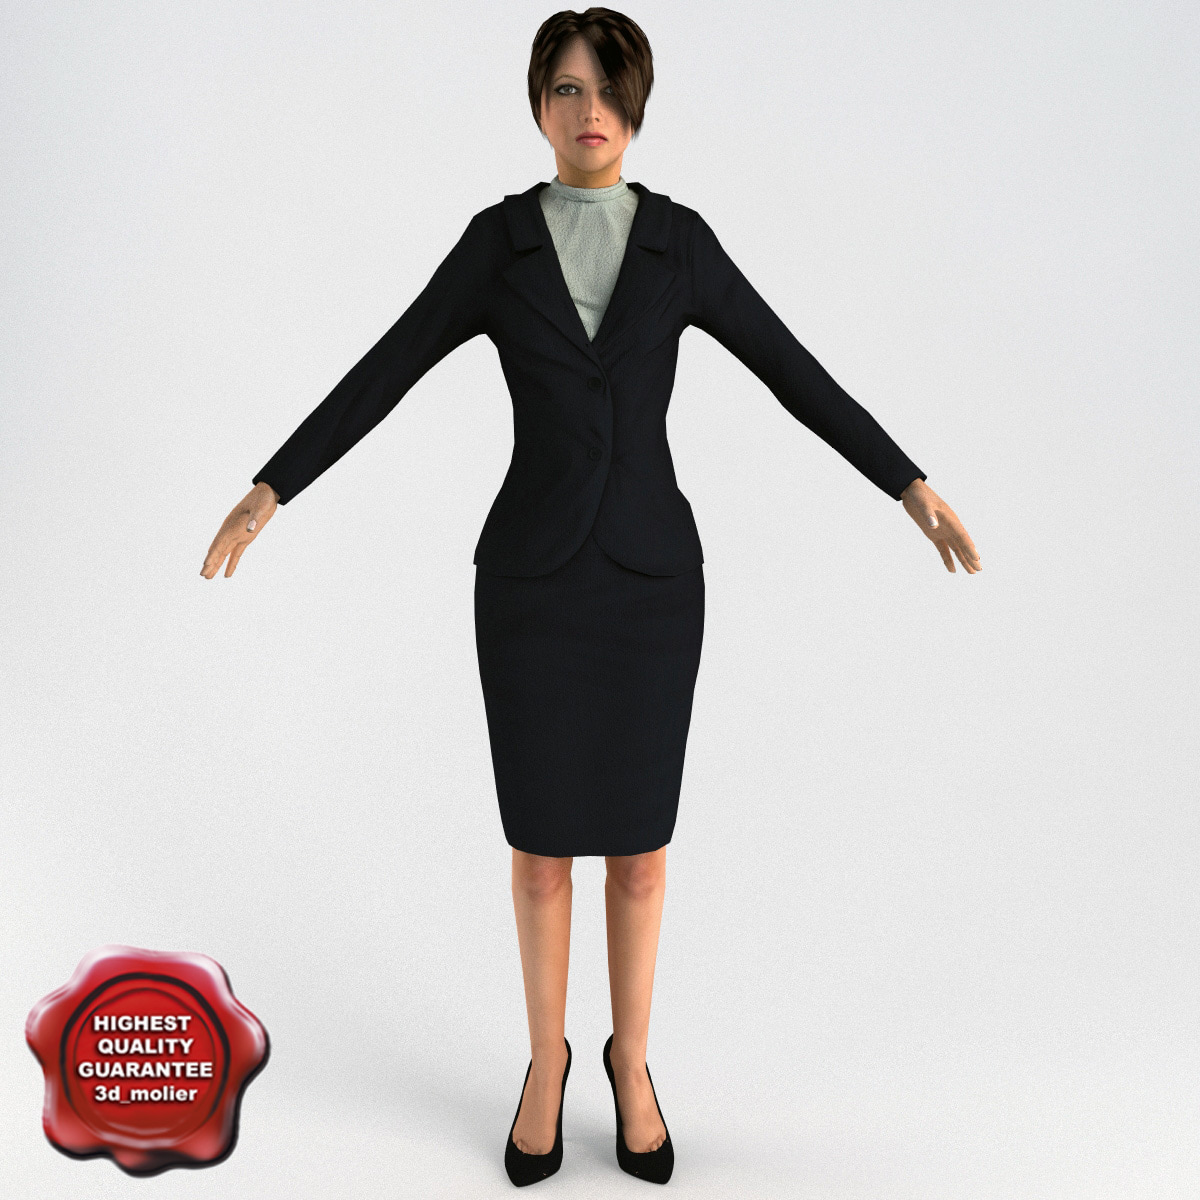 Business_Woman_00.jpg